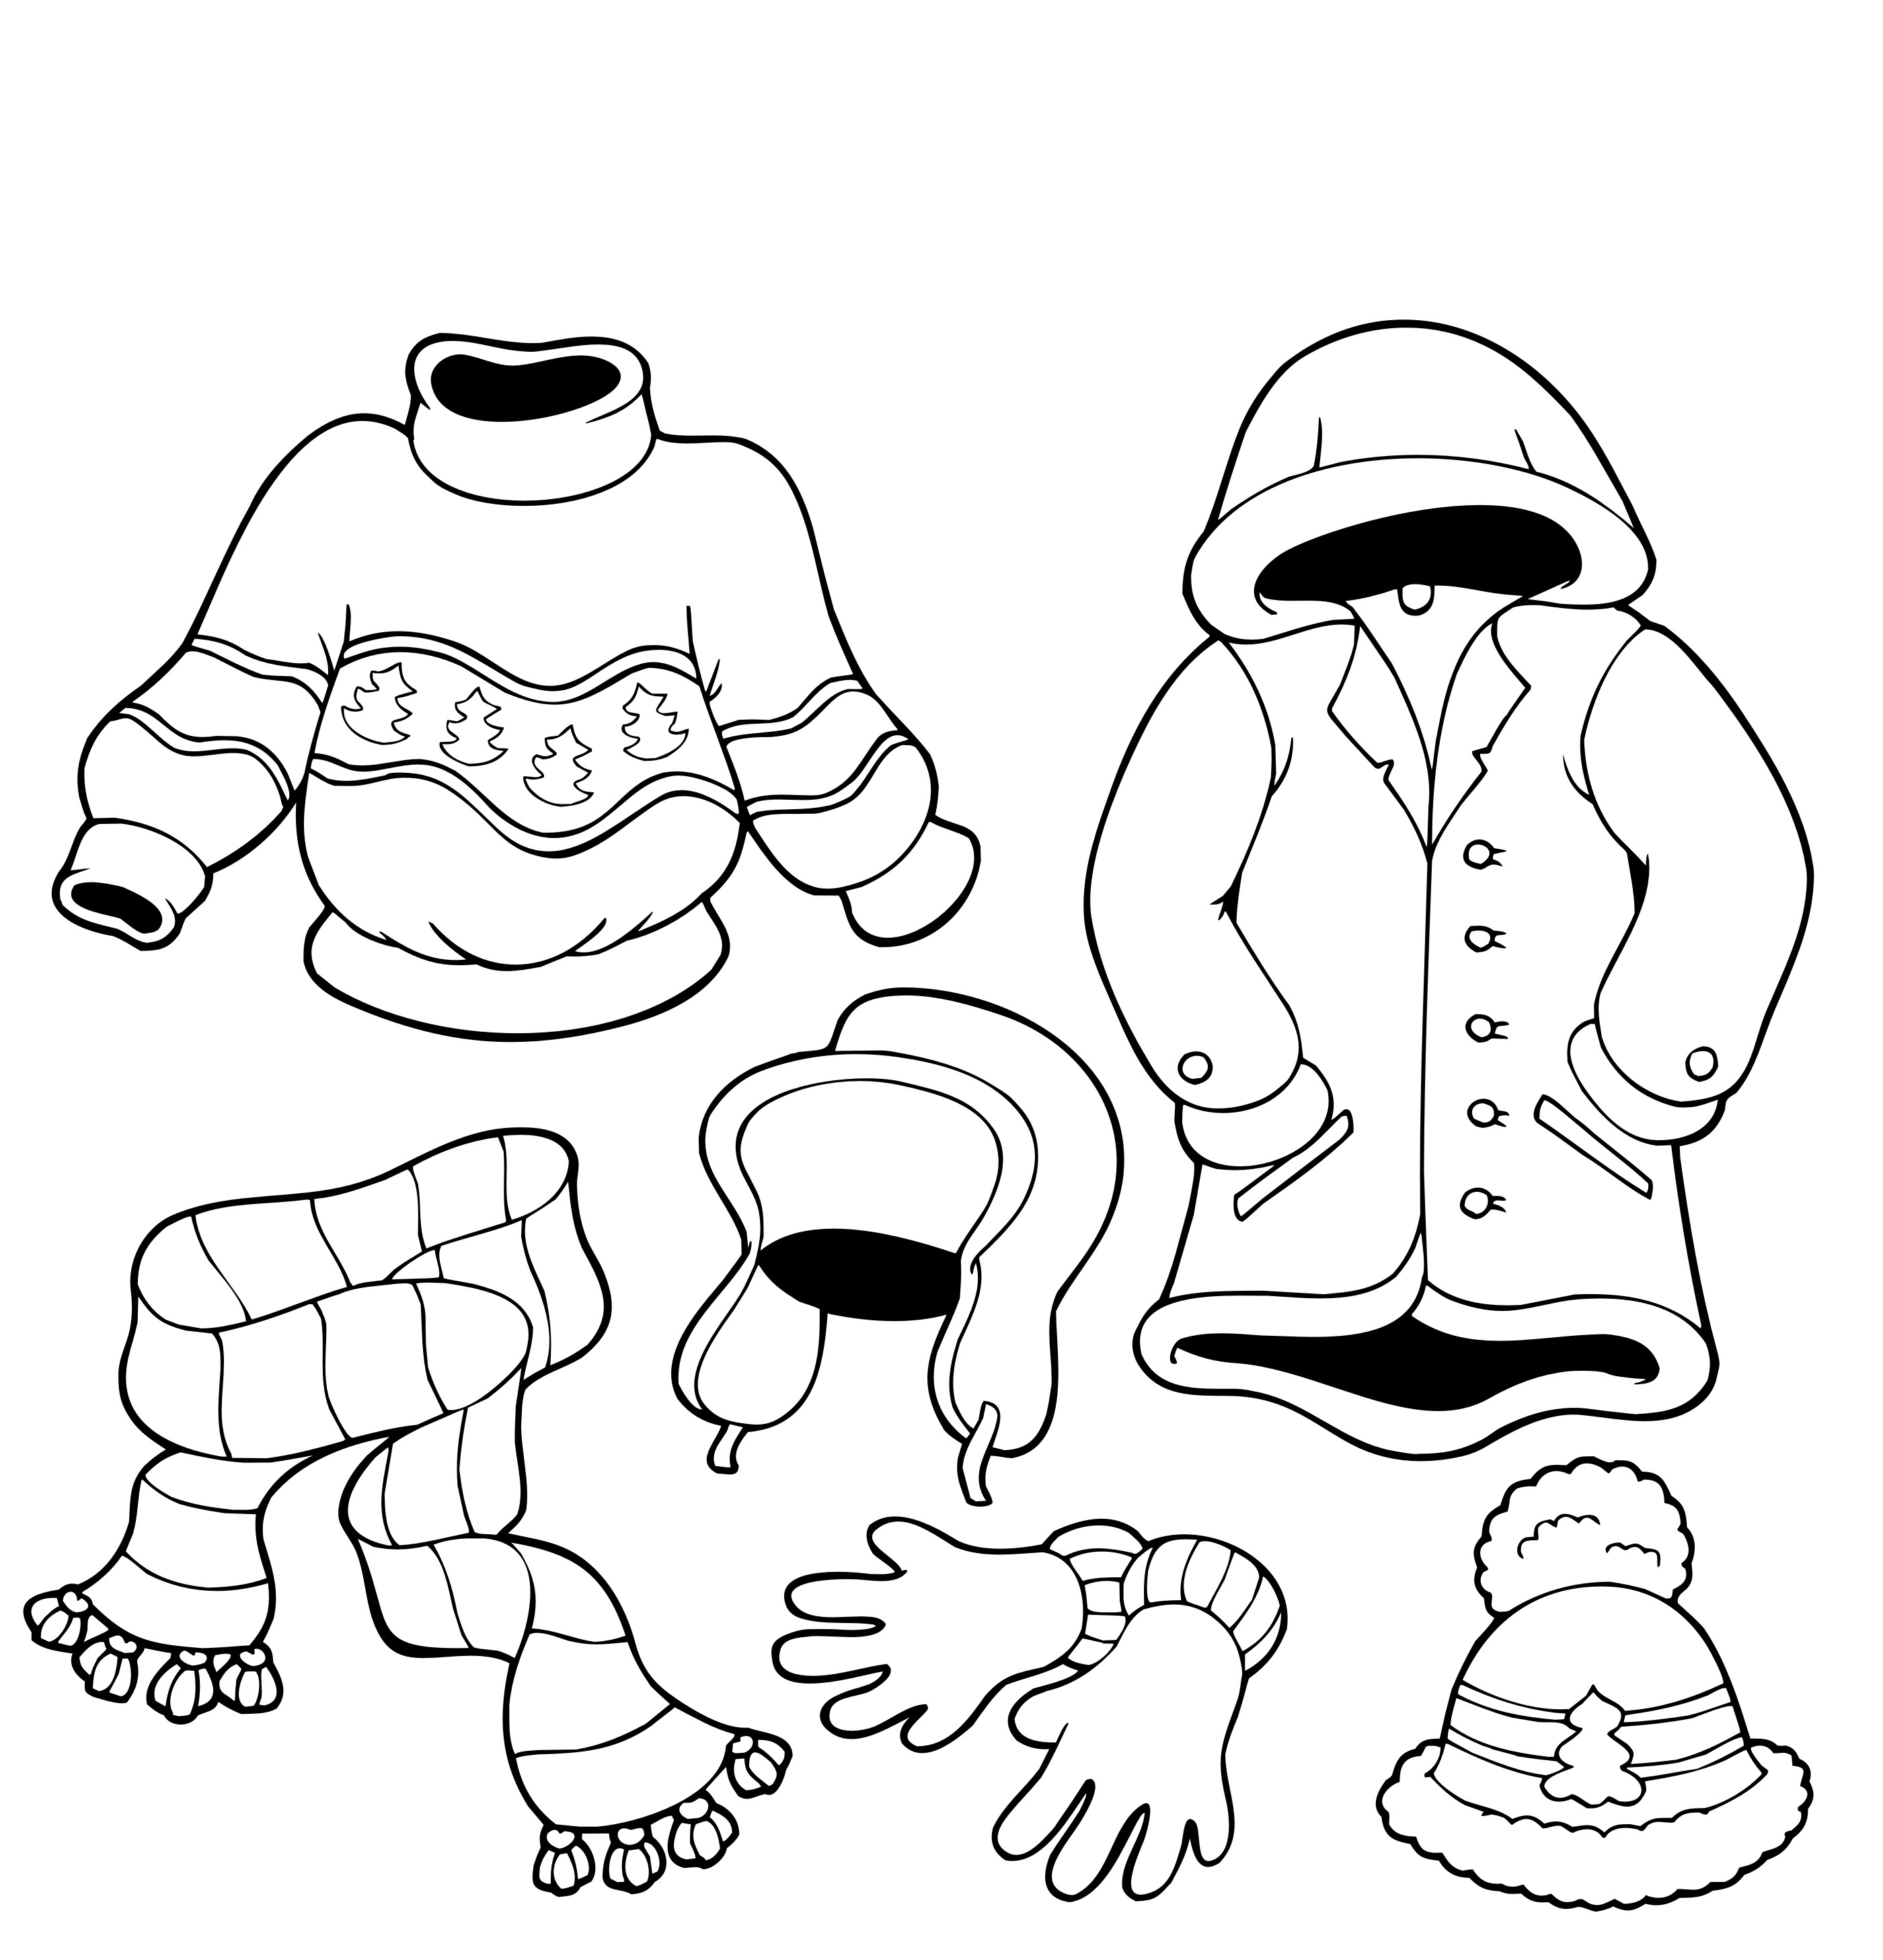 Free Printable Winter Coloring Pages For Kids Free Winter Coloring Pages